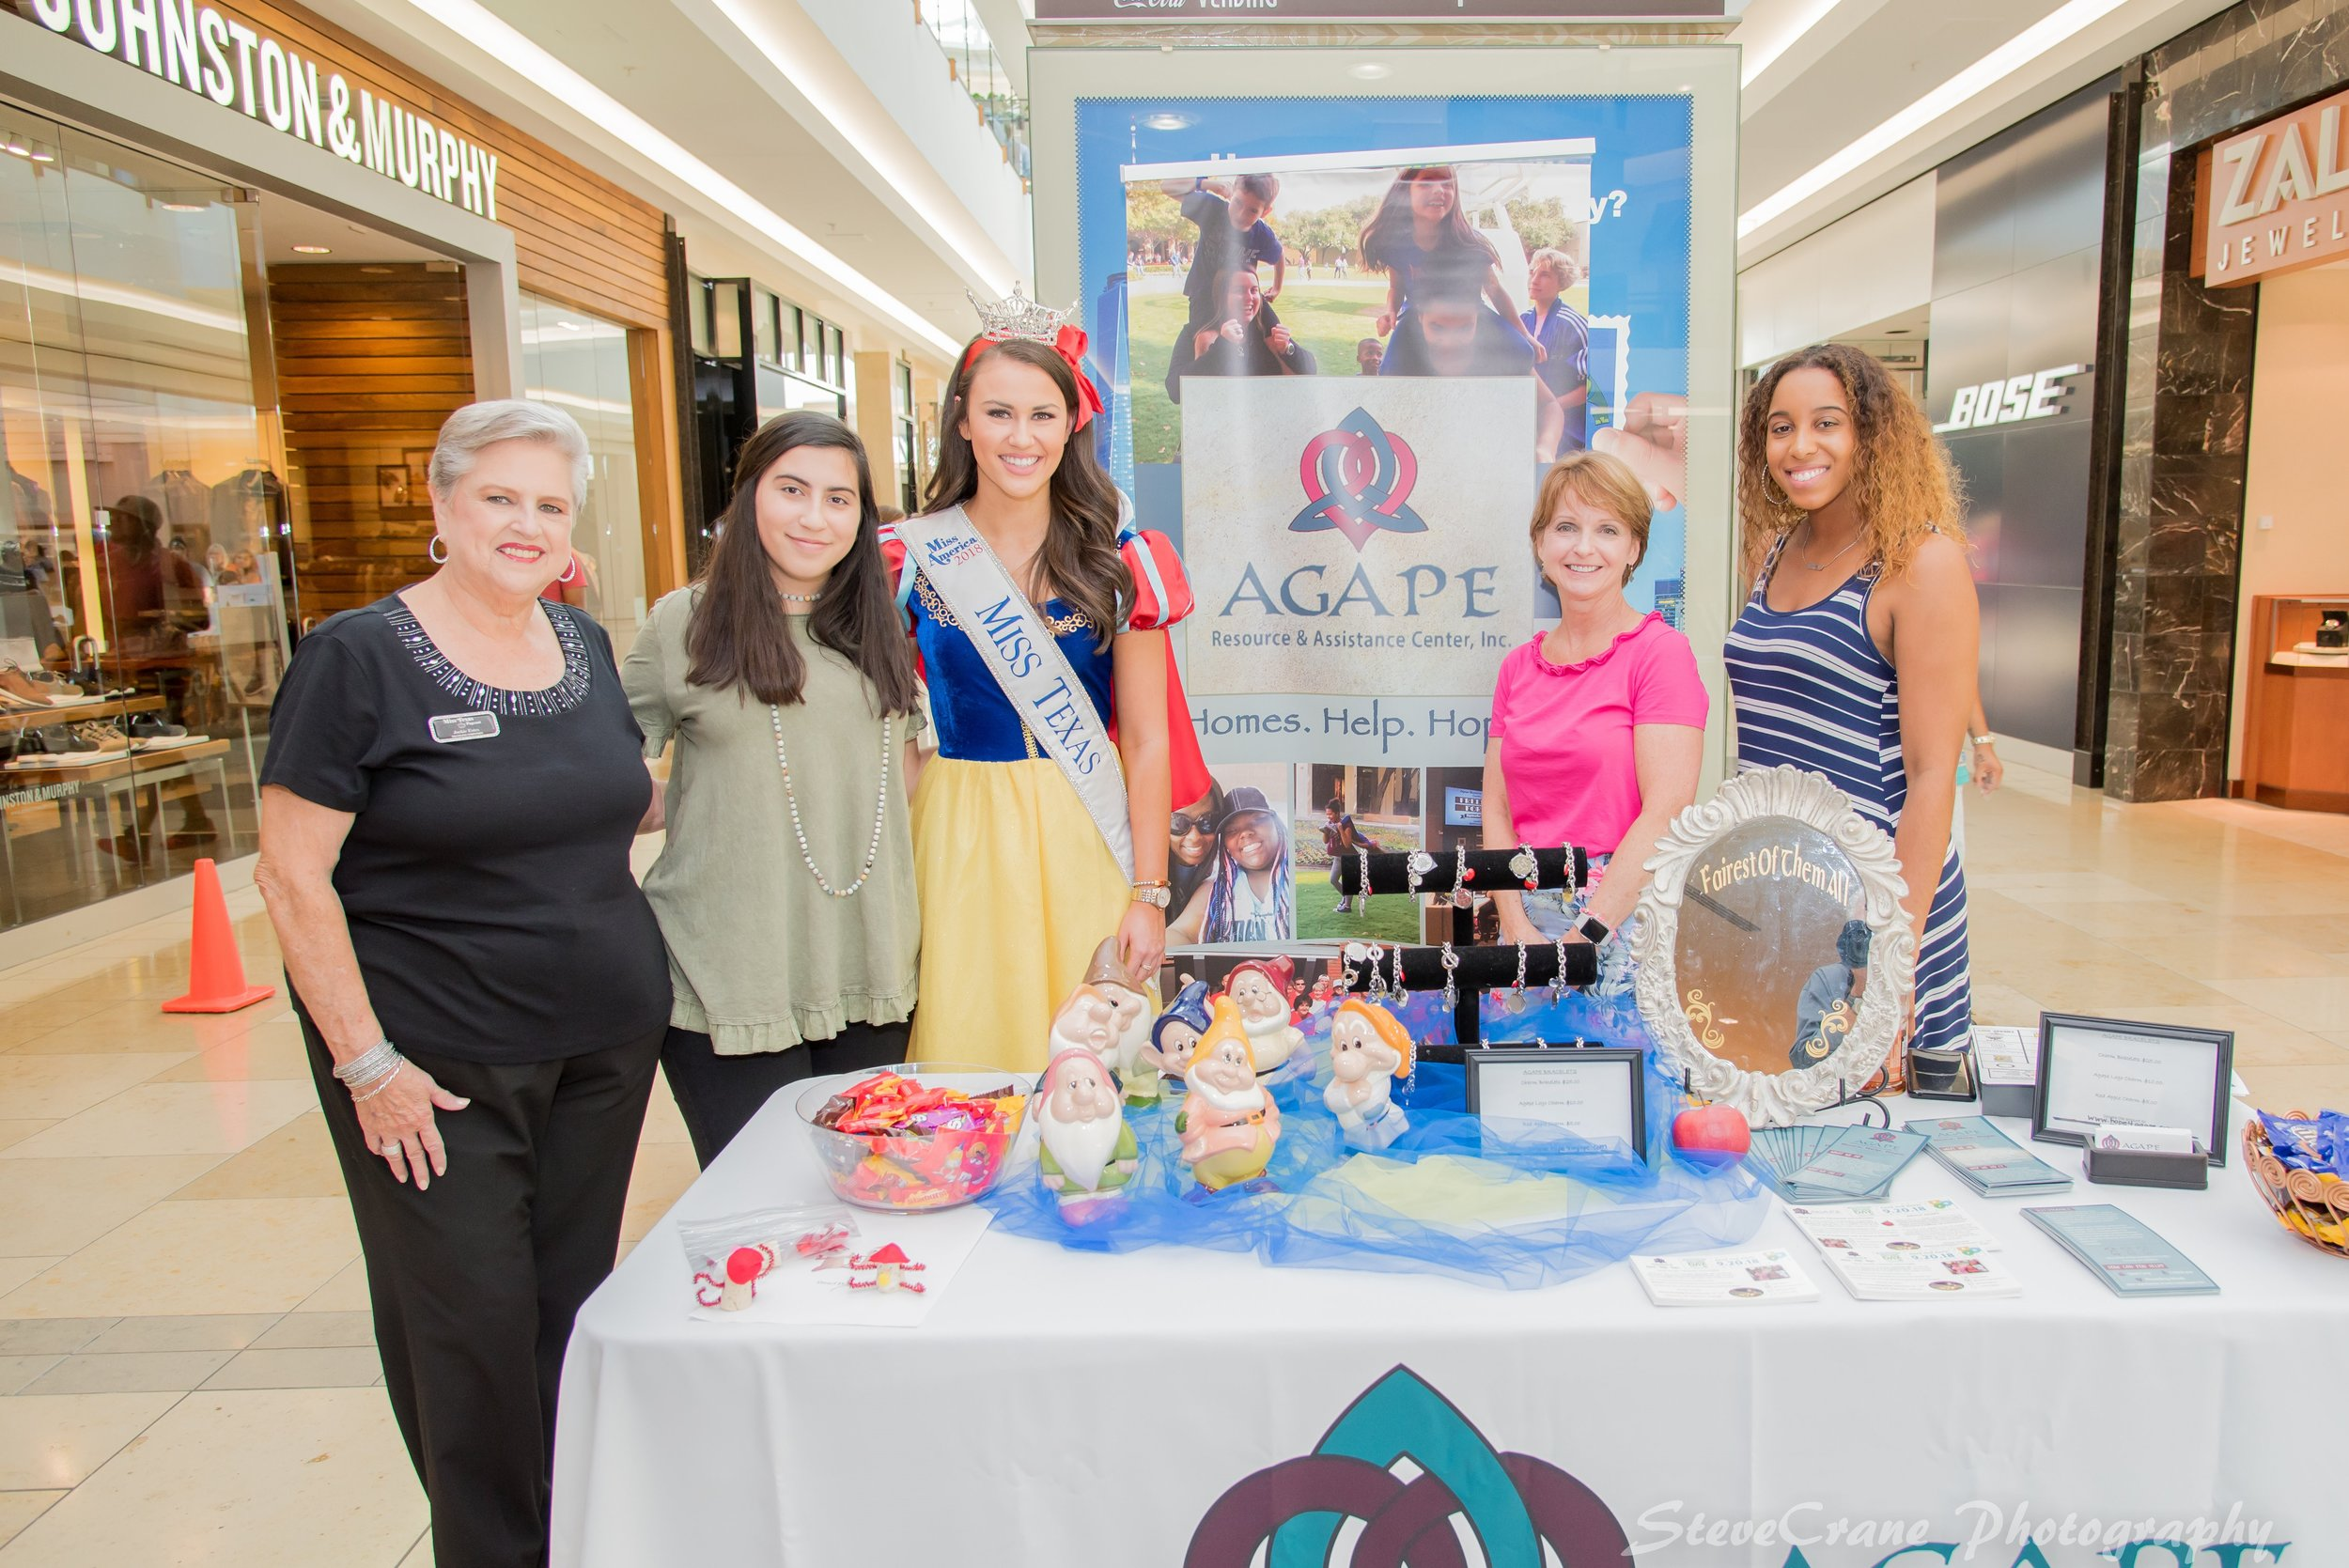 From left to right: Jackie Estes (Miss Texas' Handler), Raneem Abuajazr (Agape Caregiver), Madison Fuller (Miss Texas), Rev. Janet Collinsworth (Agape Founder & Executive Director), Ayra Springs-Foster (Agape Communications/Special Events Coordinator).